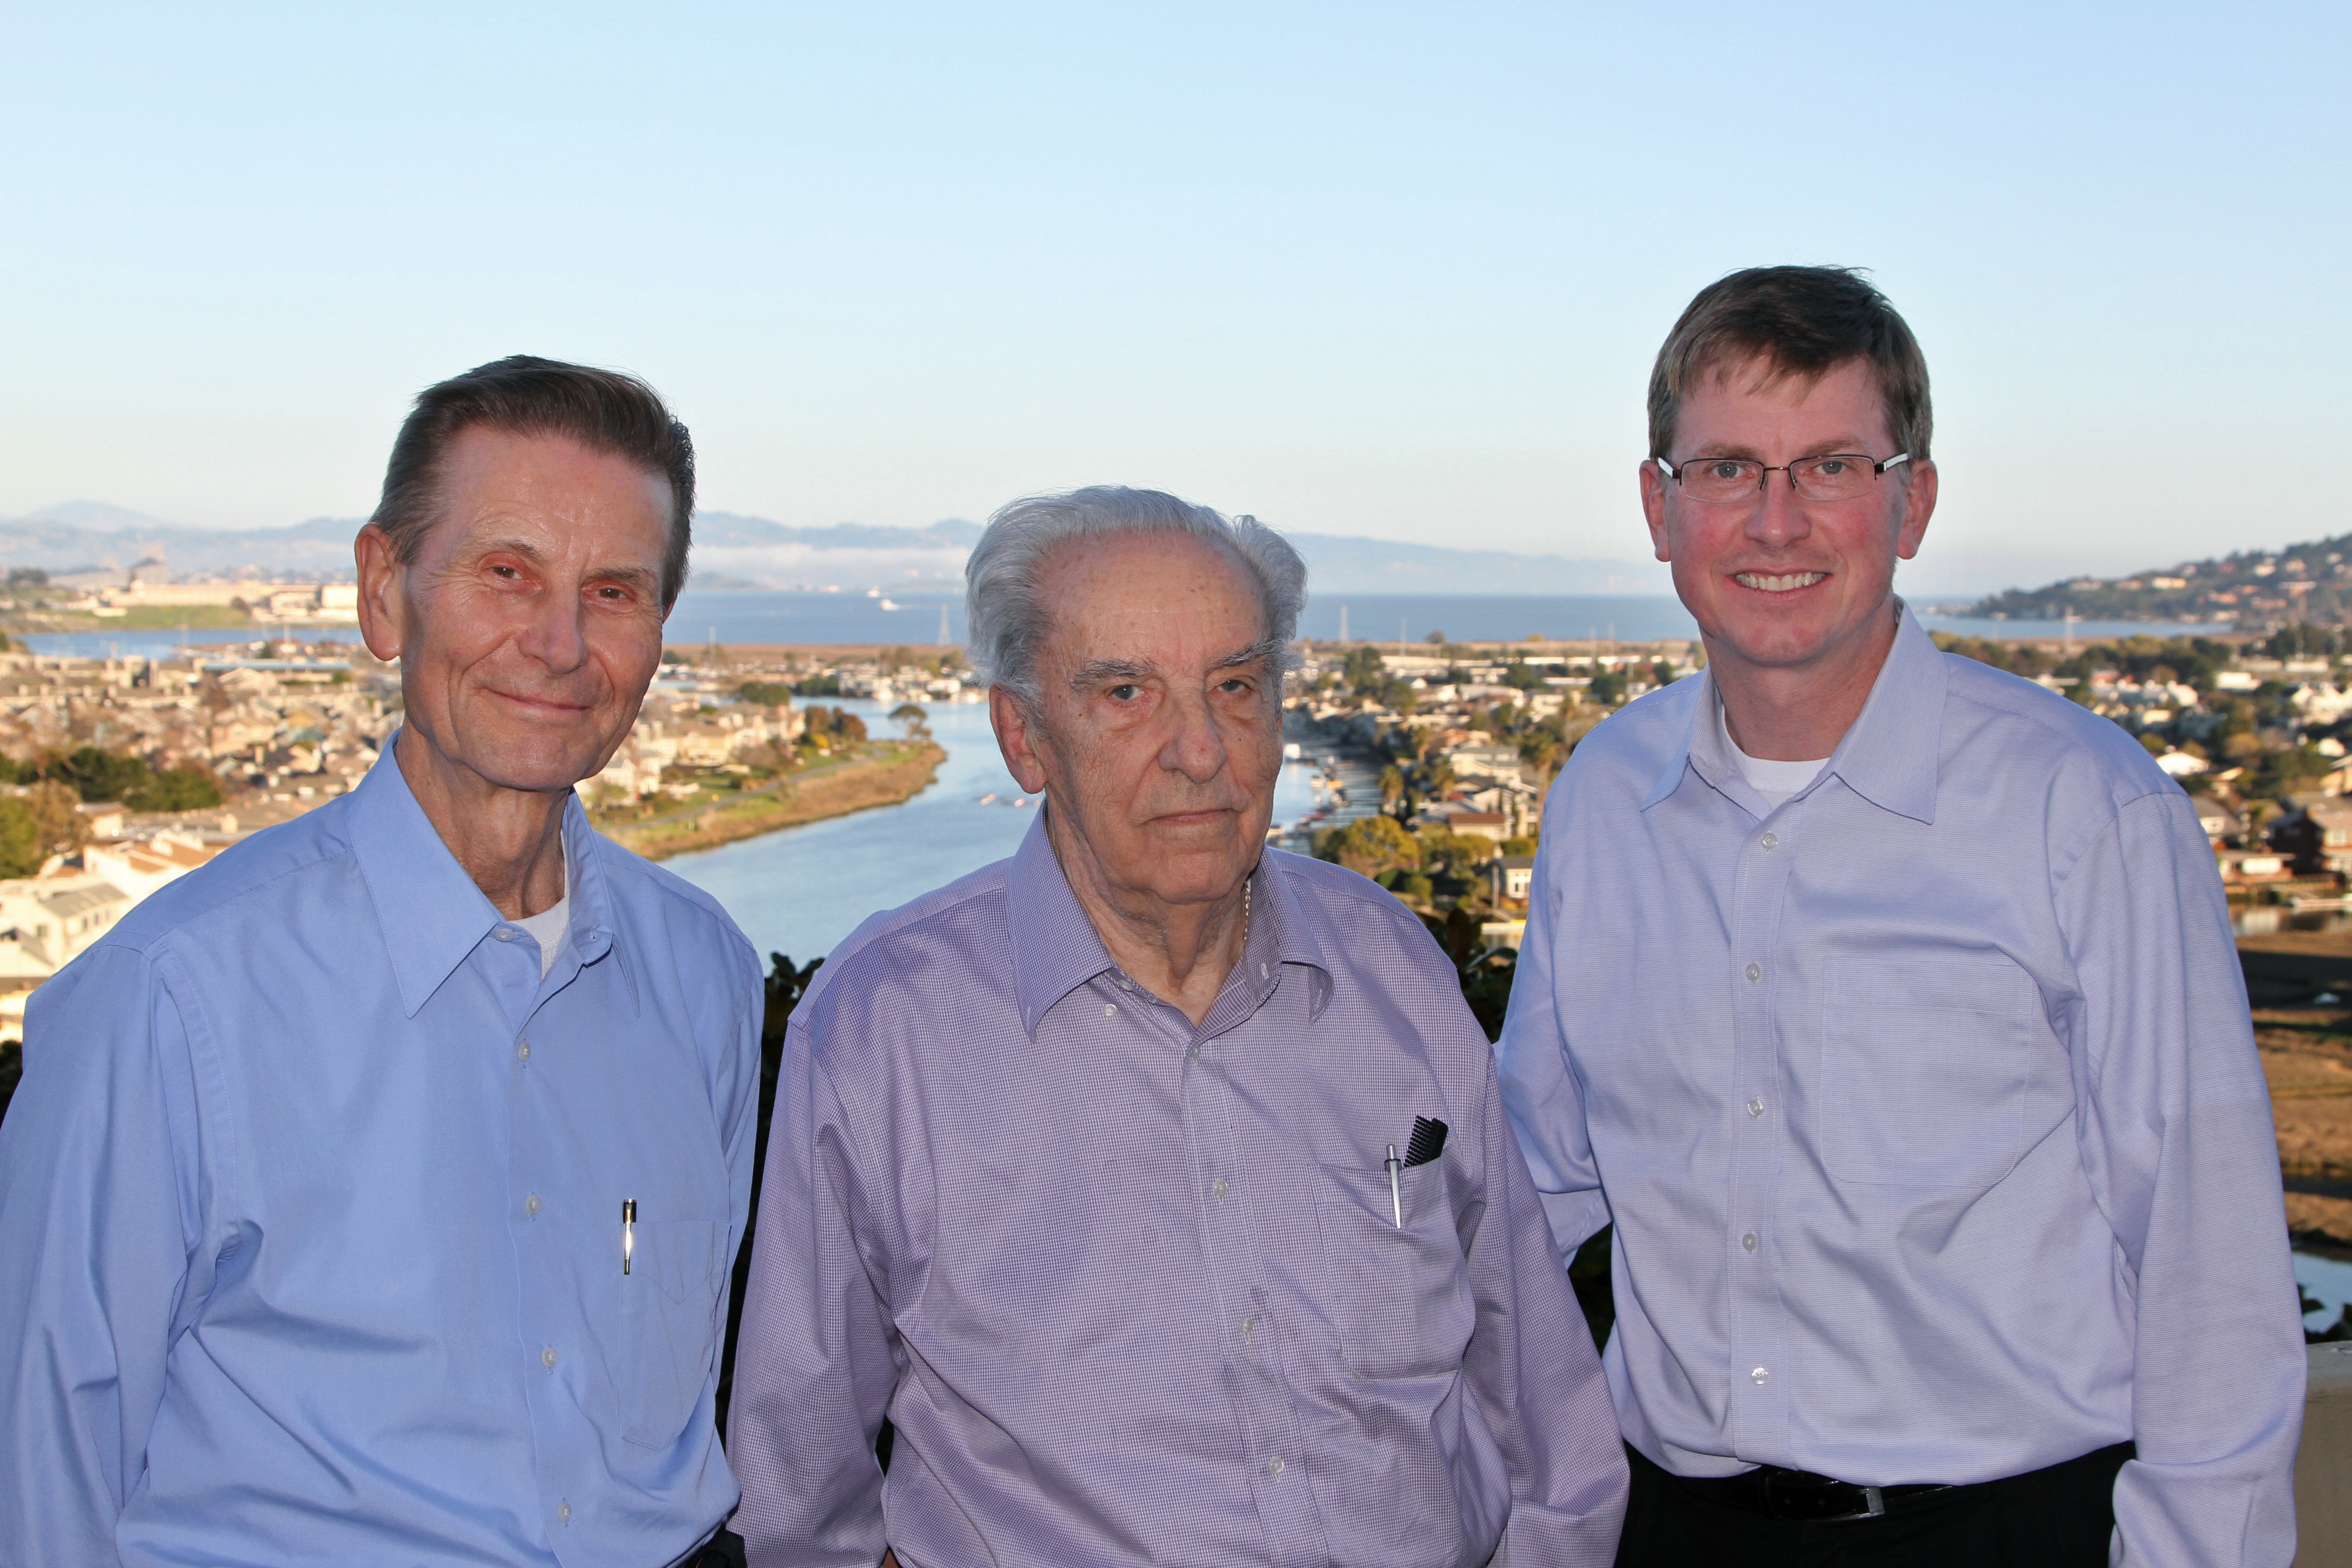 Rex Elder (center) poses with IIHR's Jacob Odgaard (left) and Larry Weber in front of a river and city.